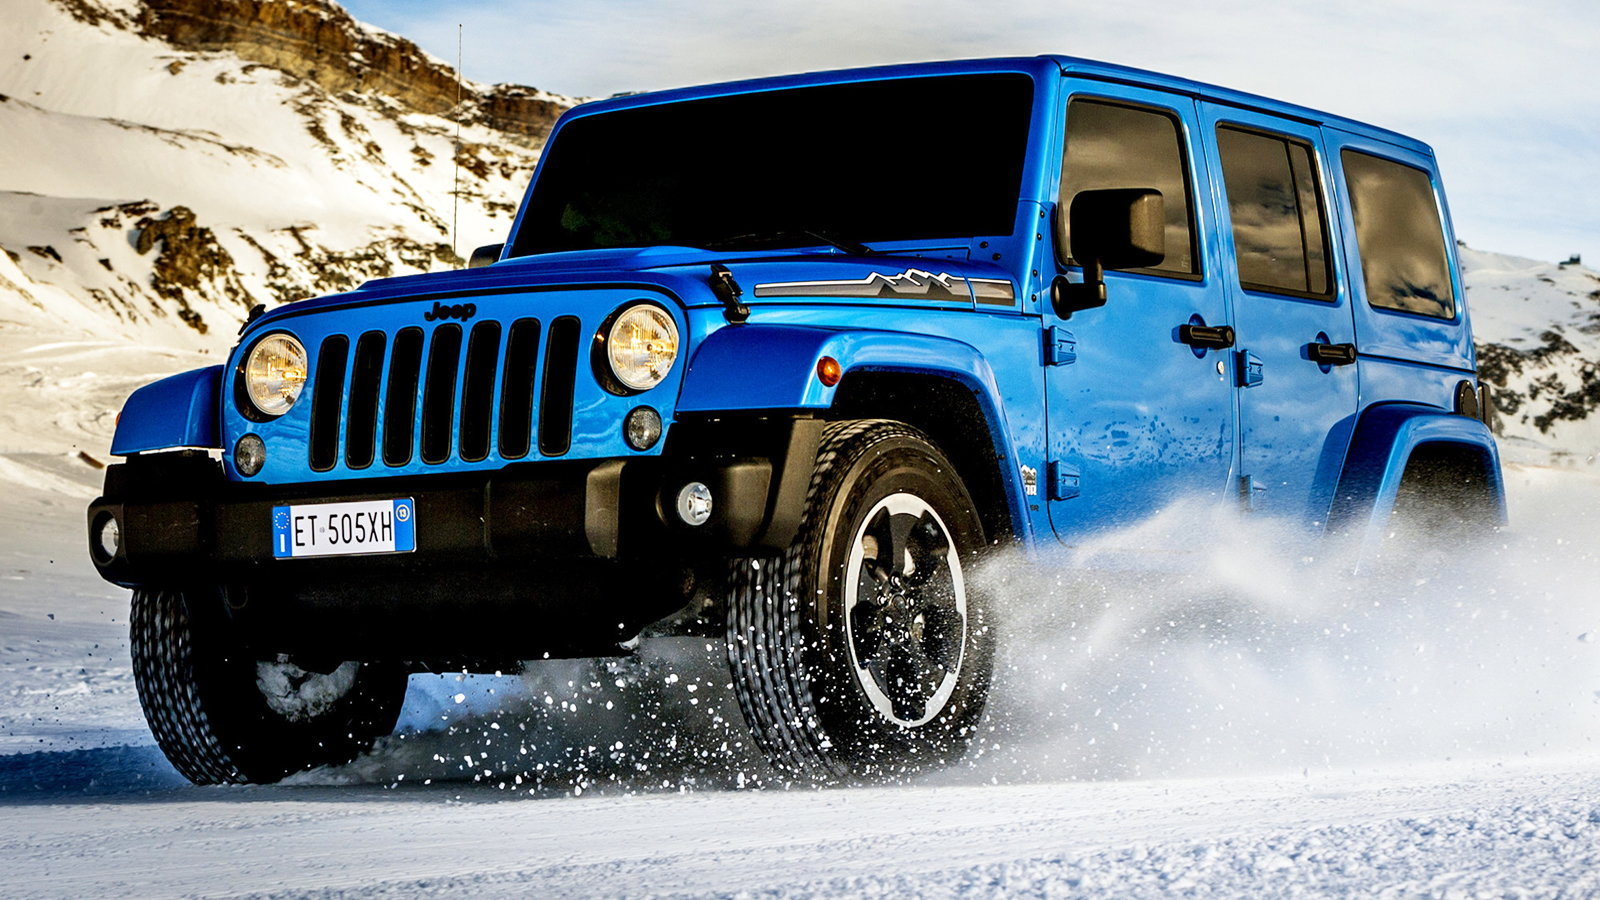 6 Most Expensive Jeeps Jk Forum Jeep Wrangler Film This Edition Of Is Based On The Sahara That Was Done In Conjunction With Same Name It Features 18 Inch Alloy Wheels